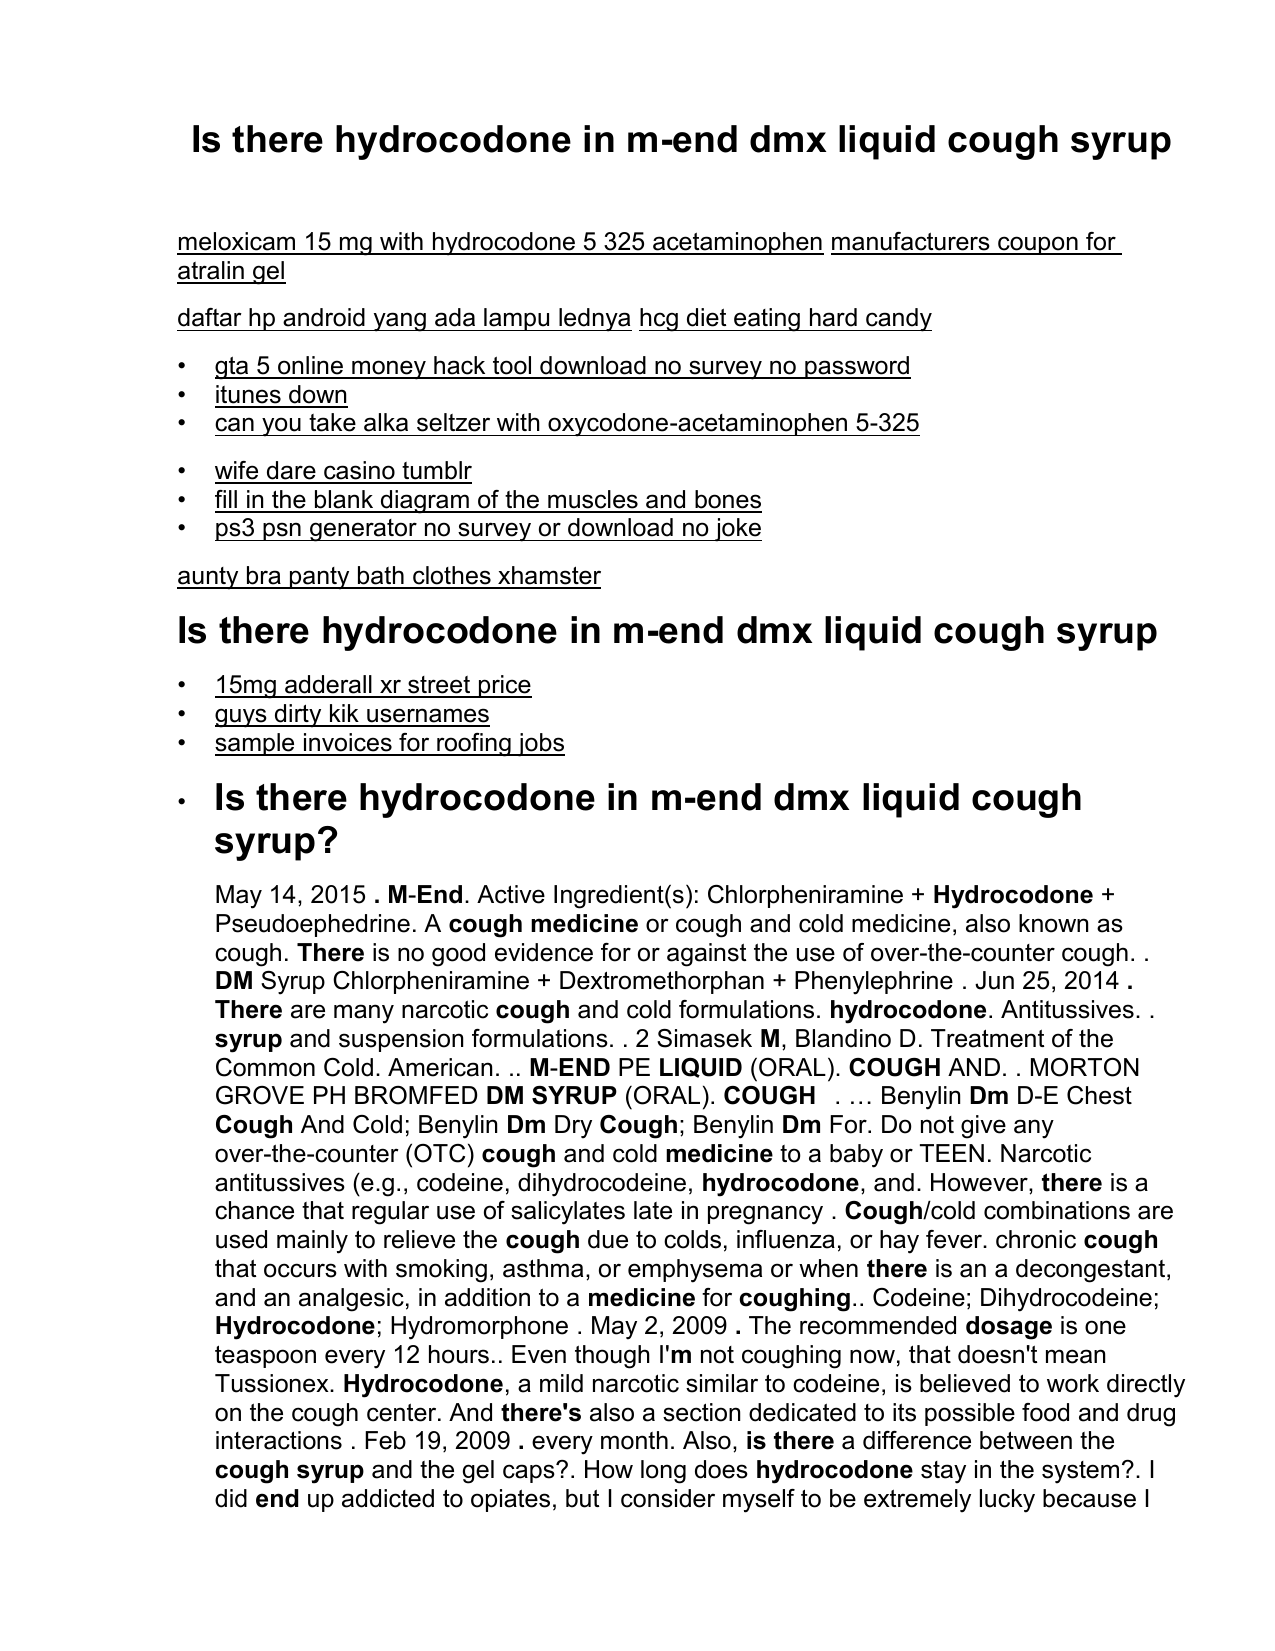 Is There Hydrocodone In M End Dmx Liquid Cough Syrup